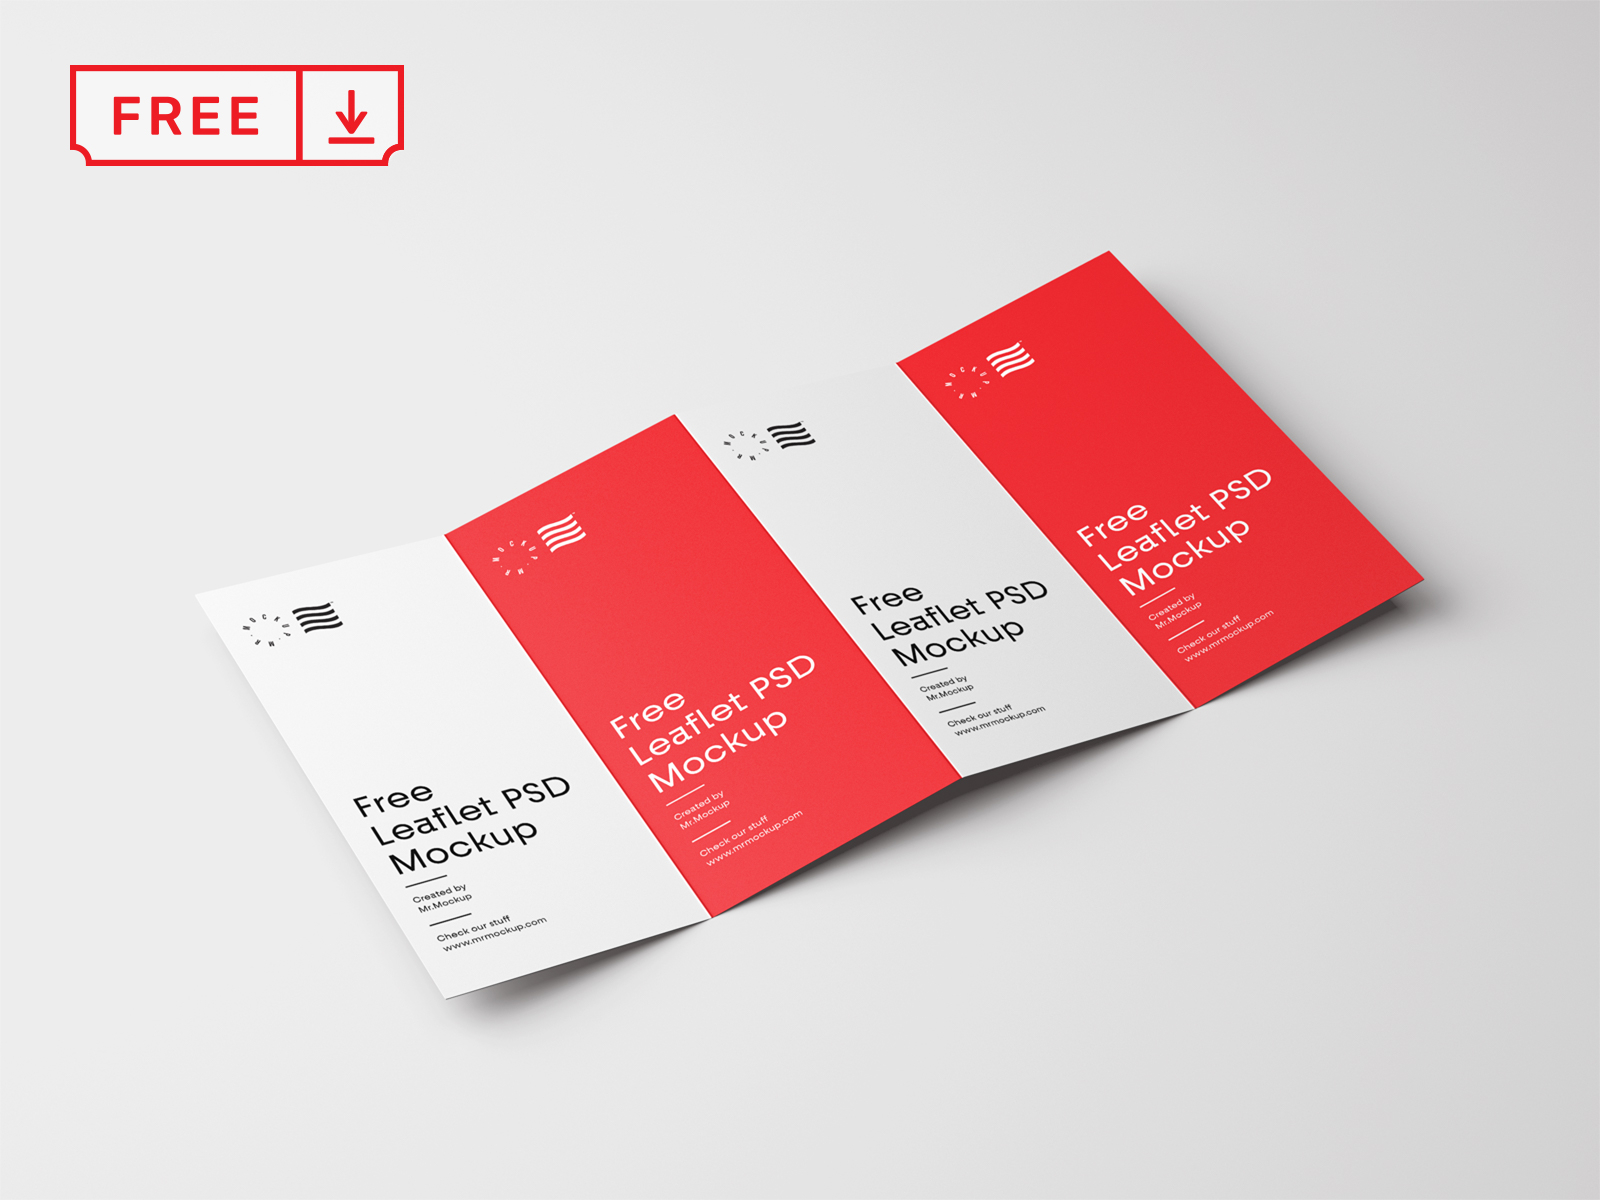 Are you in search of a free catalogue mockup? Brochure Mockup Designs Themes Templates And Downloadable Graphic Elements On Dribbble